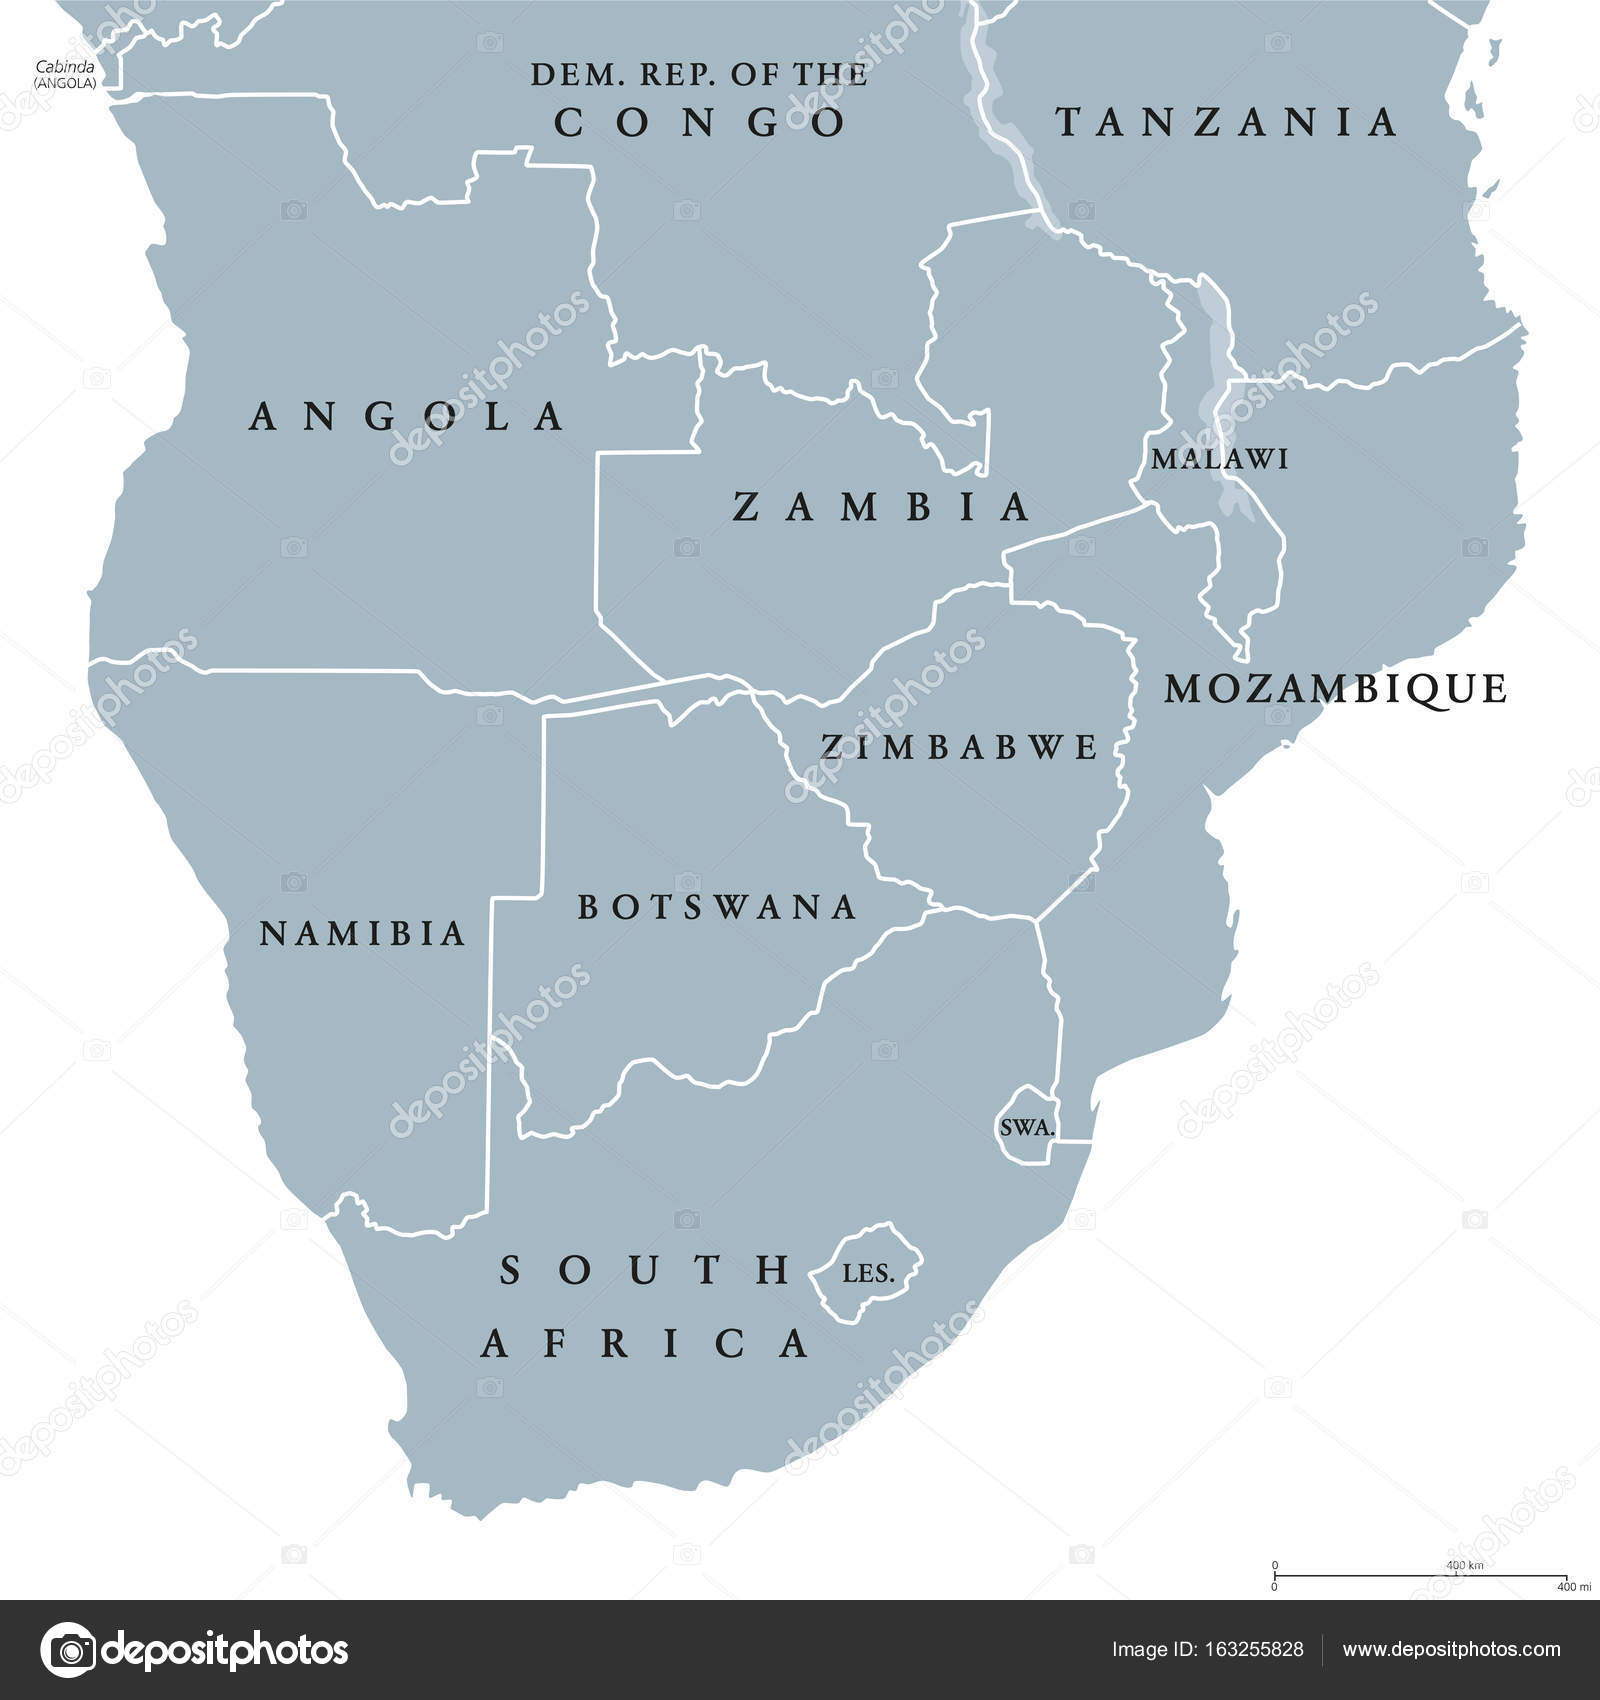 Download your maps here africa political map world maps collection africa political map the world widest choice of world maps and fabrics delivered direct to your door free samples by post to try before you download ccuart Images